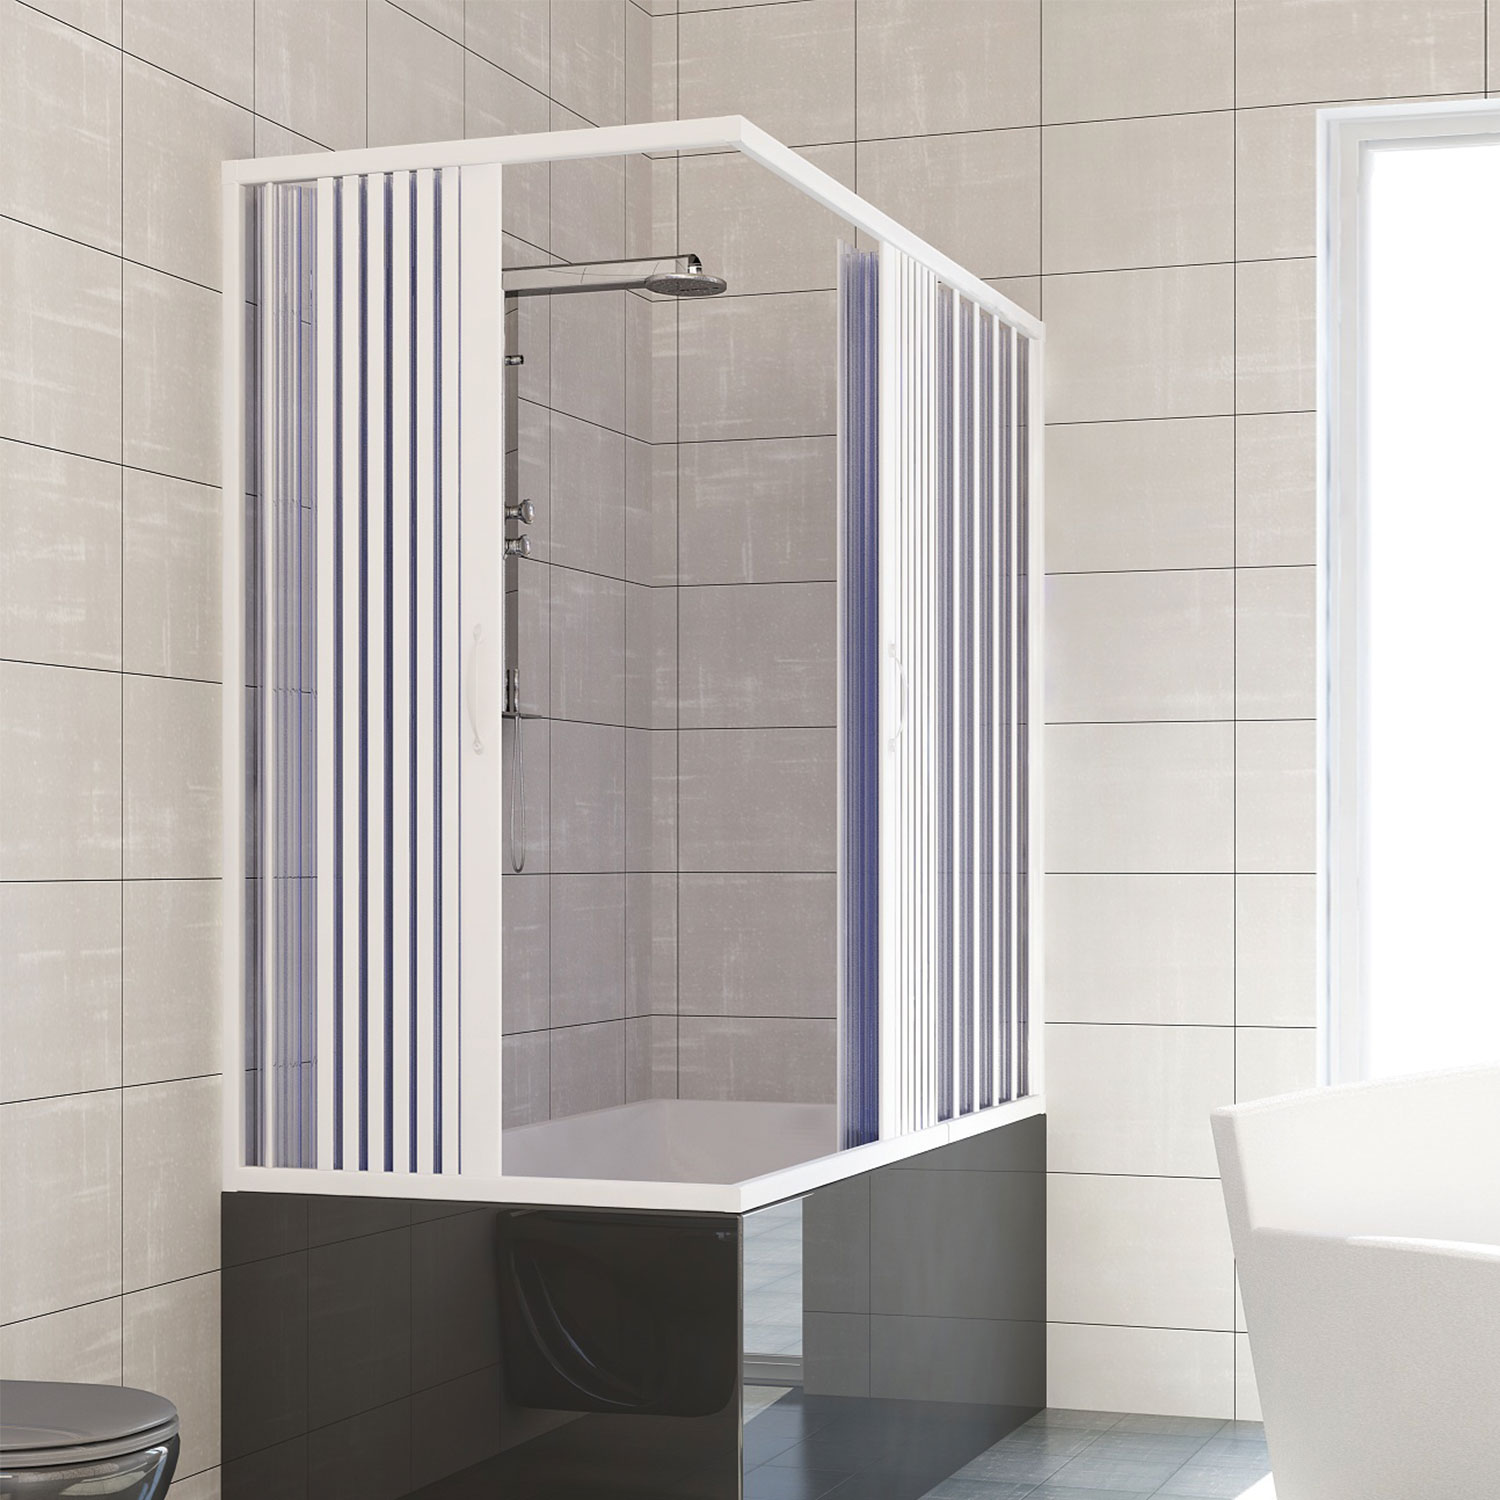 Shower Rails For Corner Baths Over Bath Shower Enclosure Plastic Pvc Folding Doors Panel